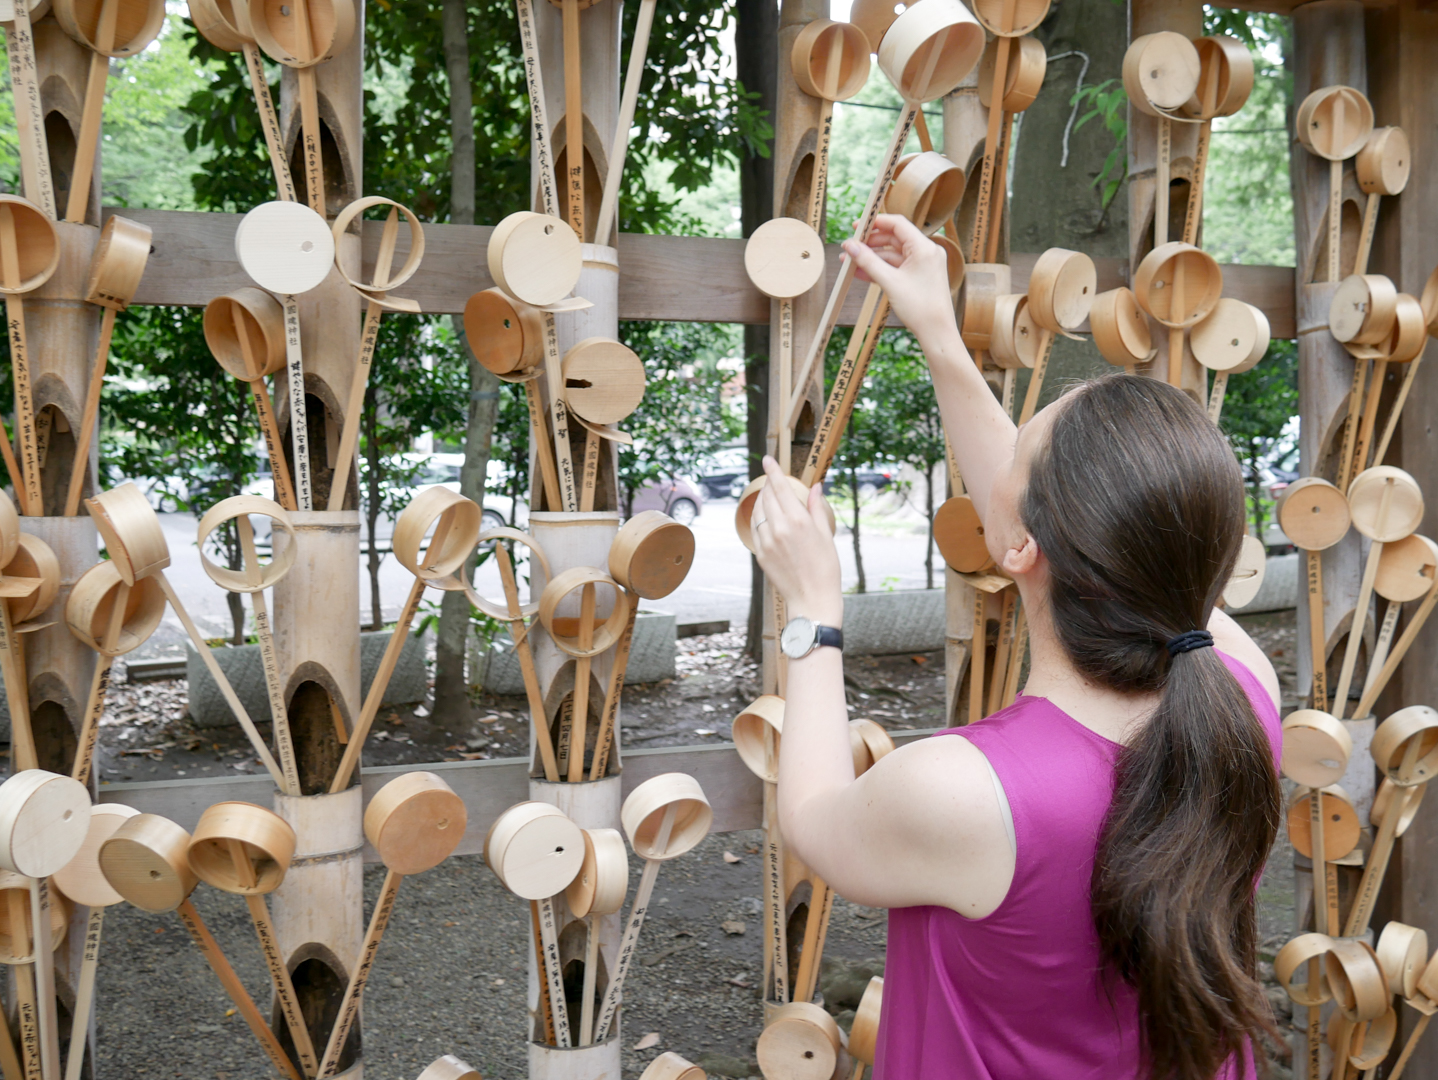 The author, Jessica, placing her bottomless ladle among the others as part of a safe birth prayer at a shrine in Tokyo.